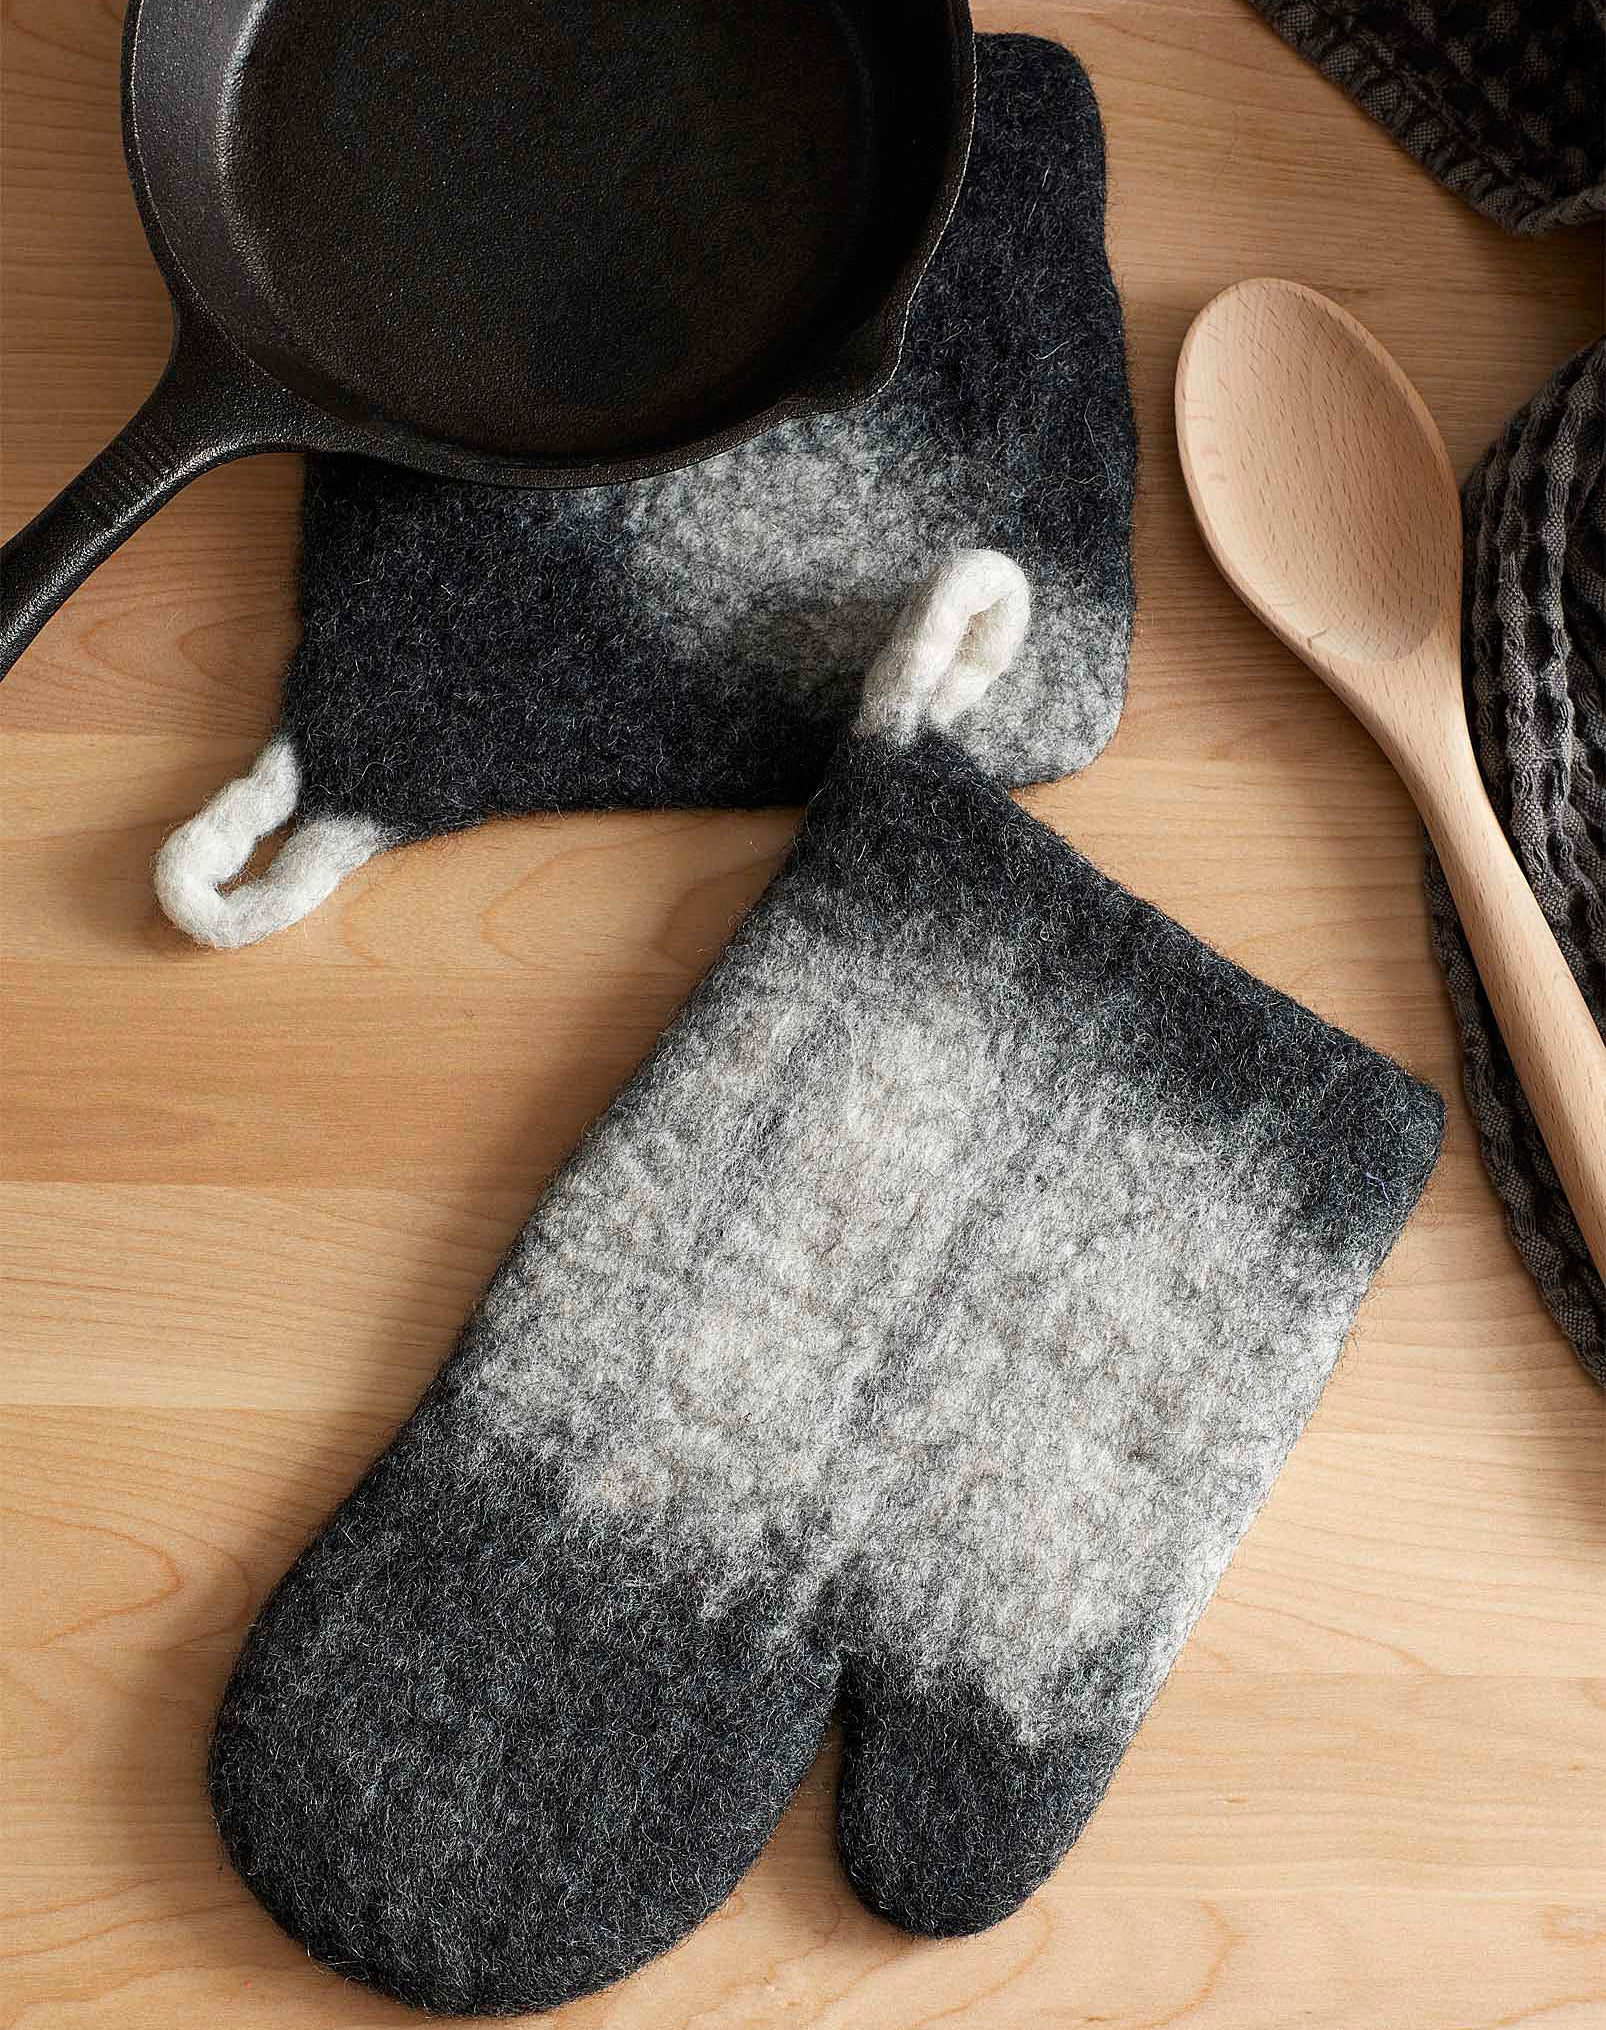 A pan next to the wooly pot holder and mit on a table